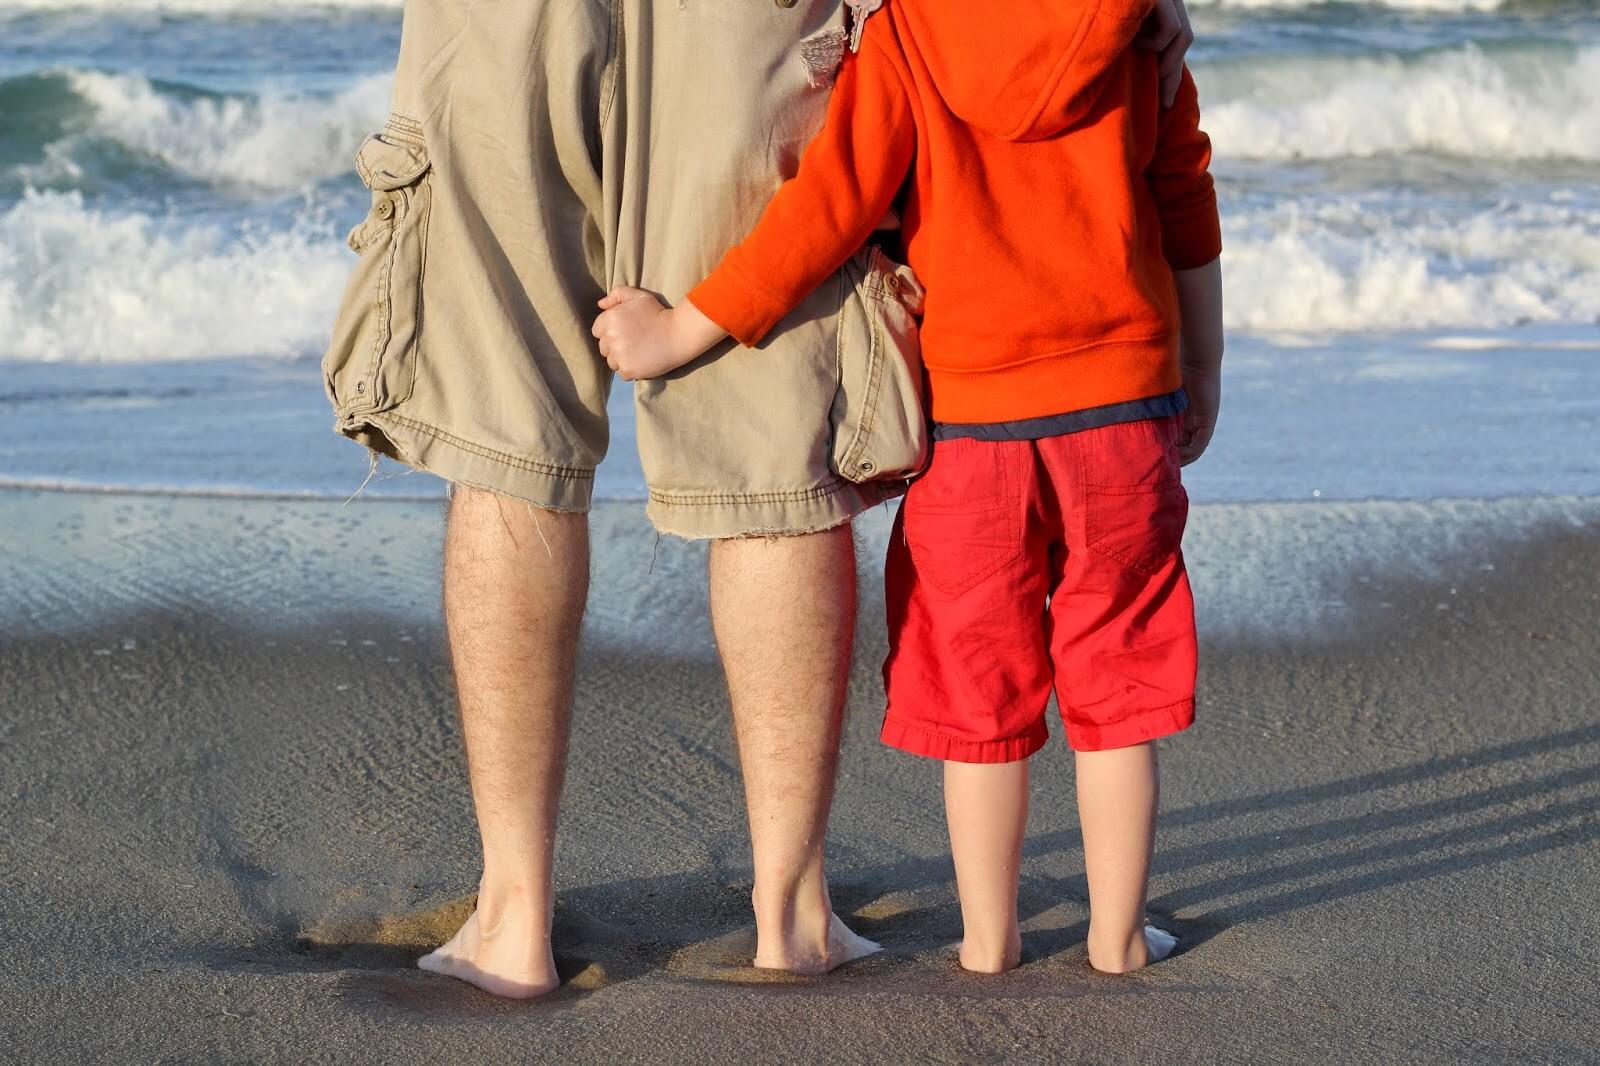 dad and boy on beach feet in sand